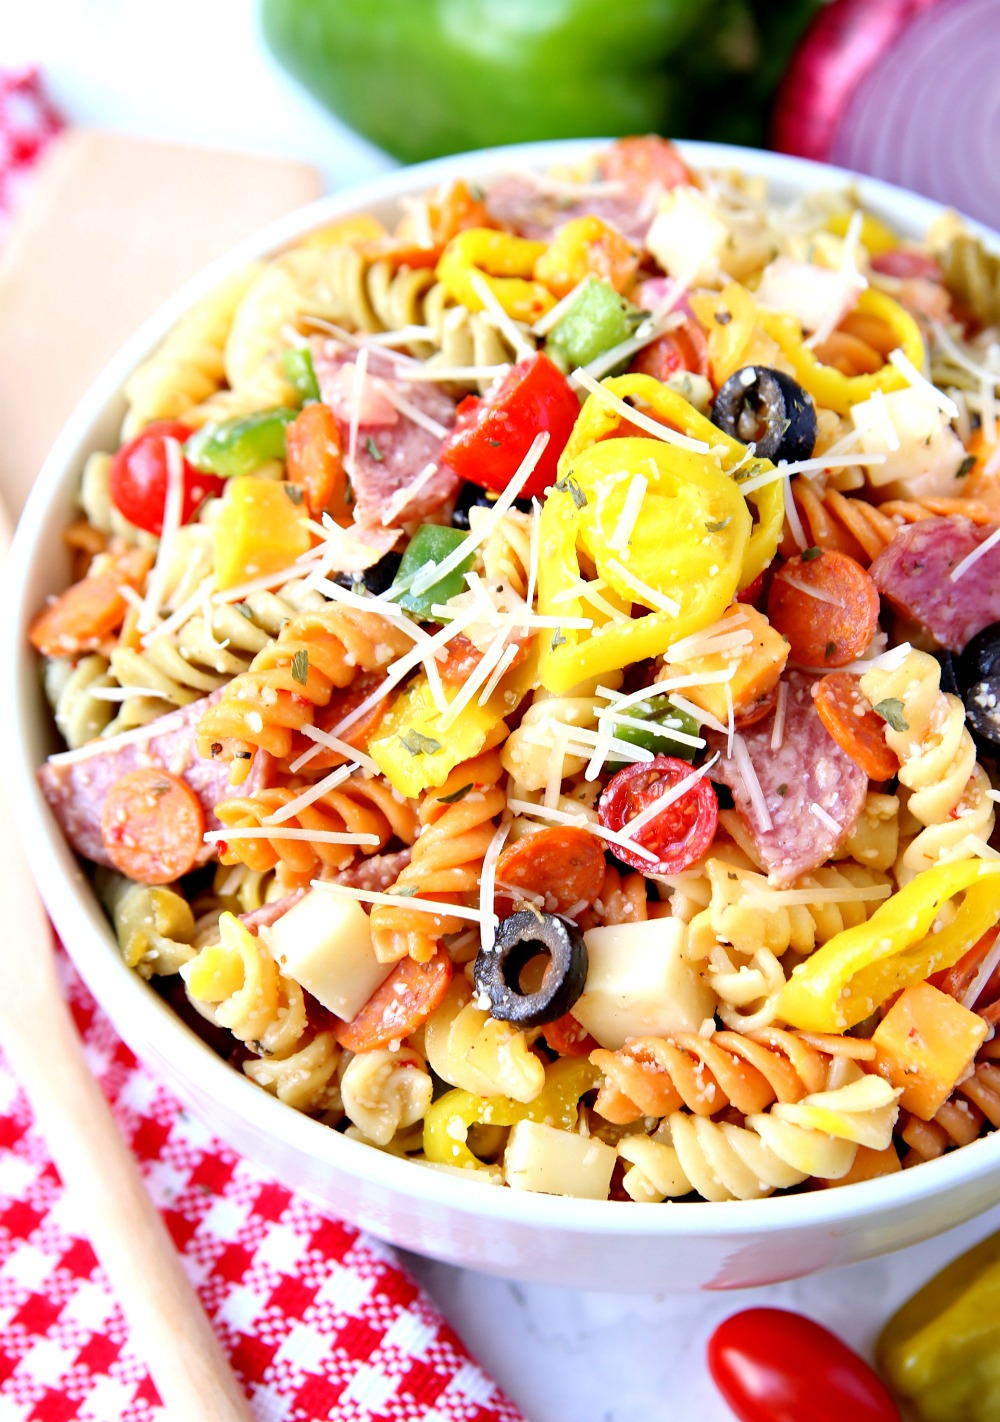 Pizza Pasta Salad is the best pasta salad recipe. It's full of flavor and easy to make.